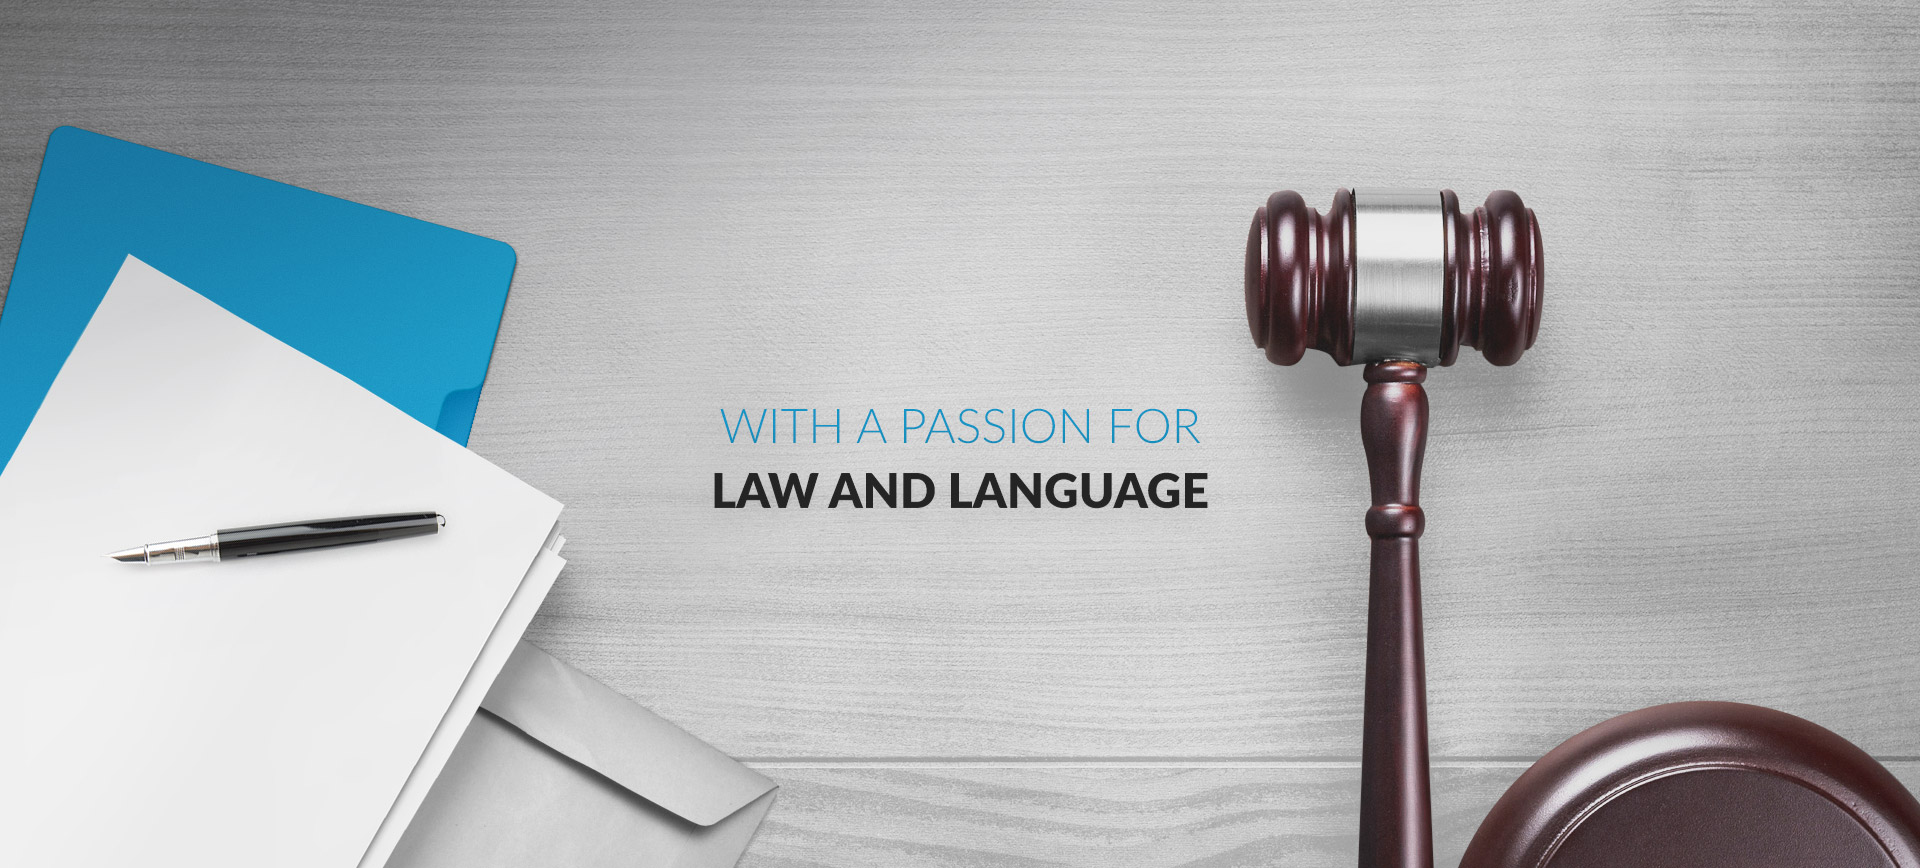 with-passion-for-law-and-language